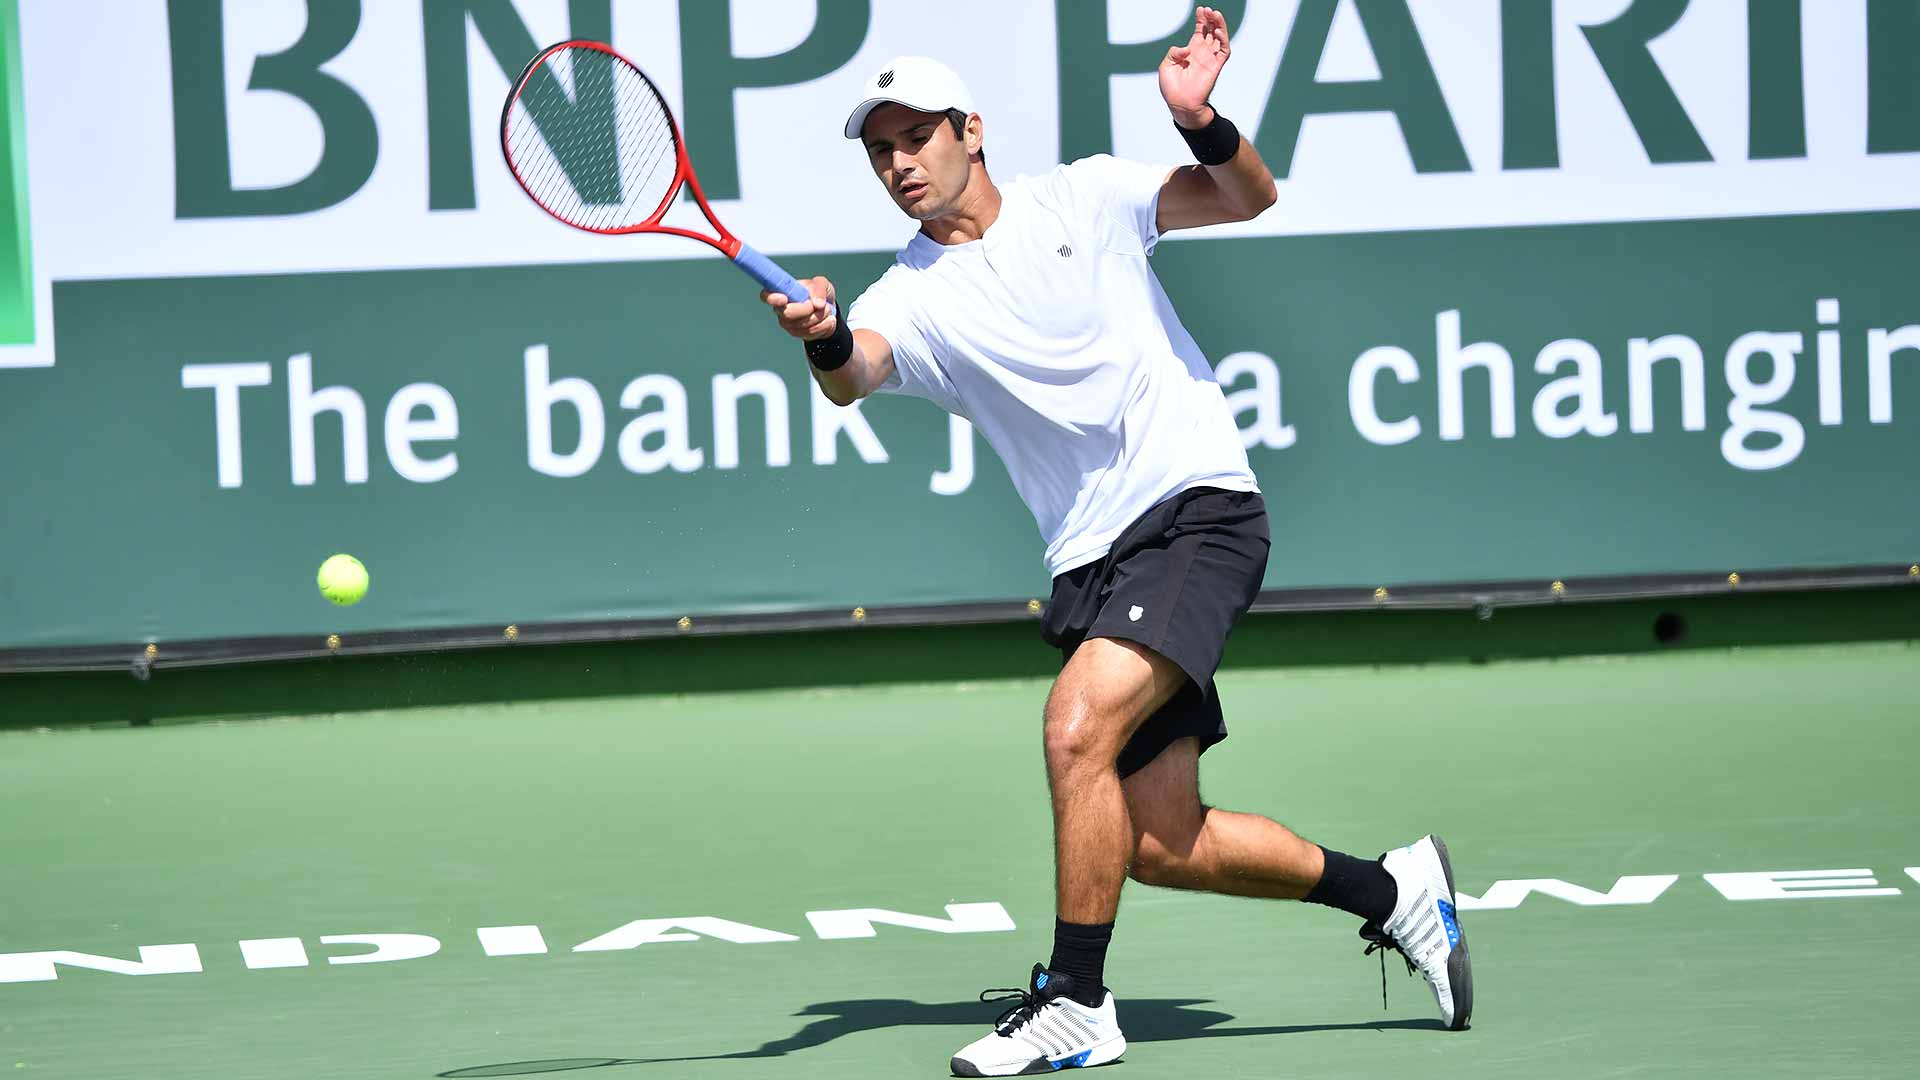 <a href='https://www.atptour.com/en/players/marcos-giron/gc88/overview'>Marcos Giron</a> will face <a href='https://www.atptour.com/en/players/milos-raonic/r975/overview'>Milos Raonic</a> at the <a href='https://www.atptour.com/en/tournaments/indian-wells/404/overview'>BNP Paribas Open</a> in Indian Wells